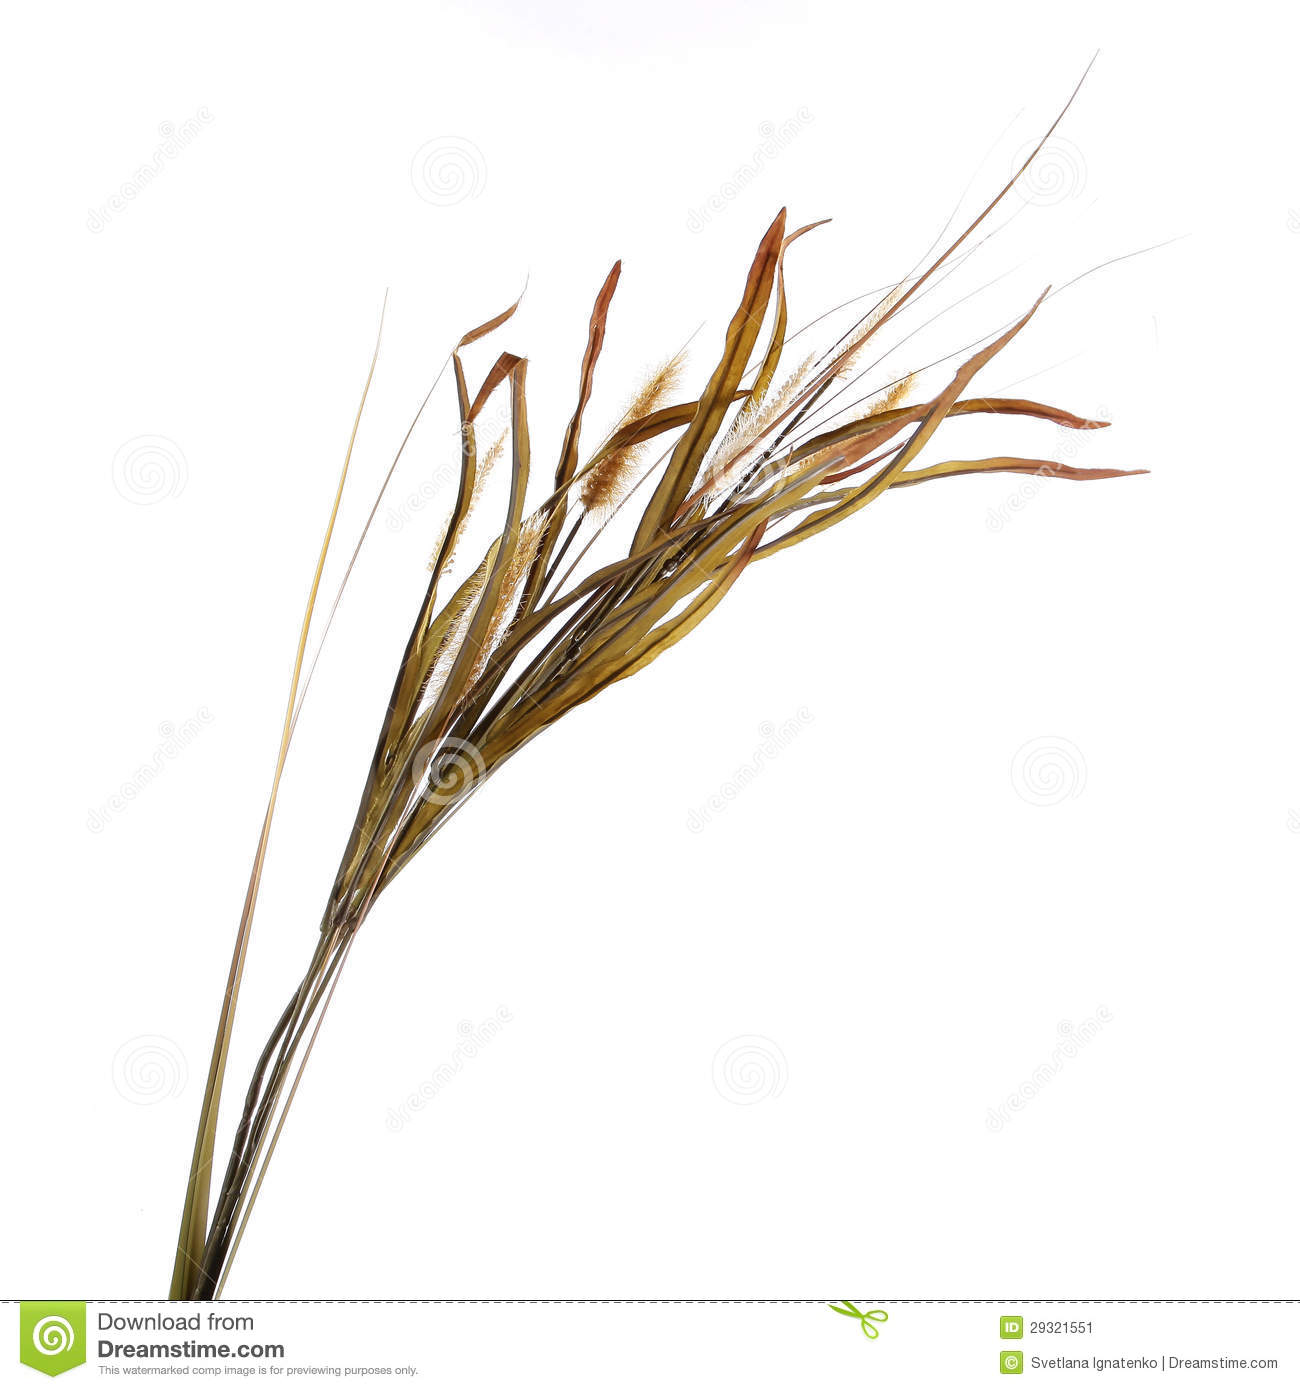 Dry grass clipart.